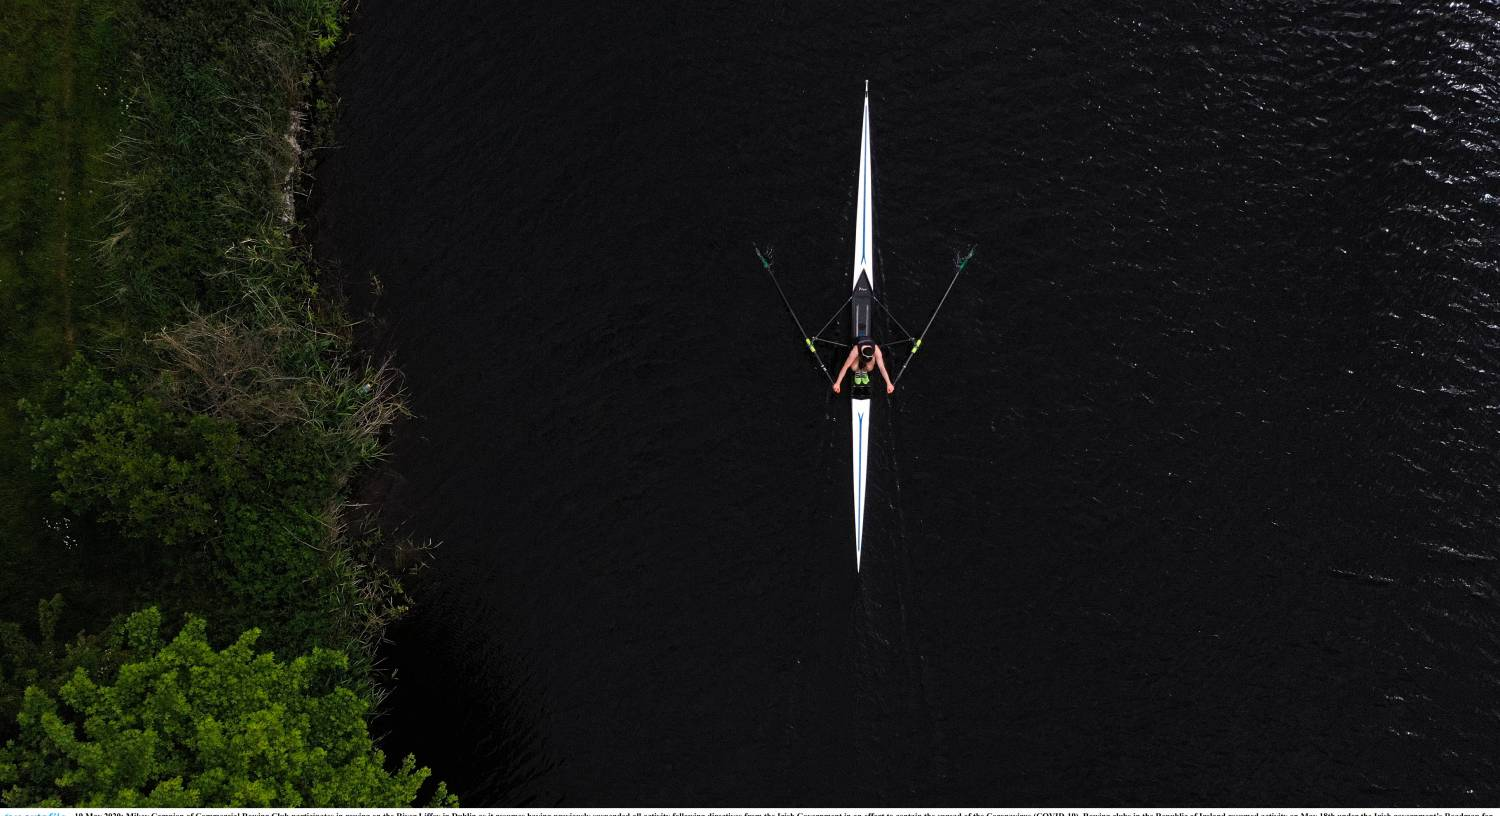 Rowing's return receives 'only positive feedback'